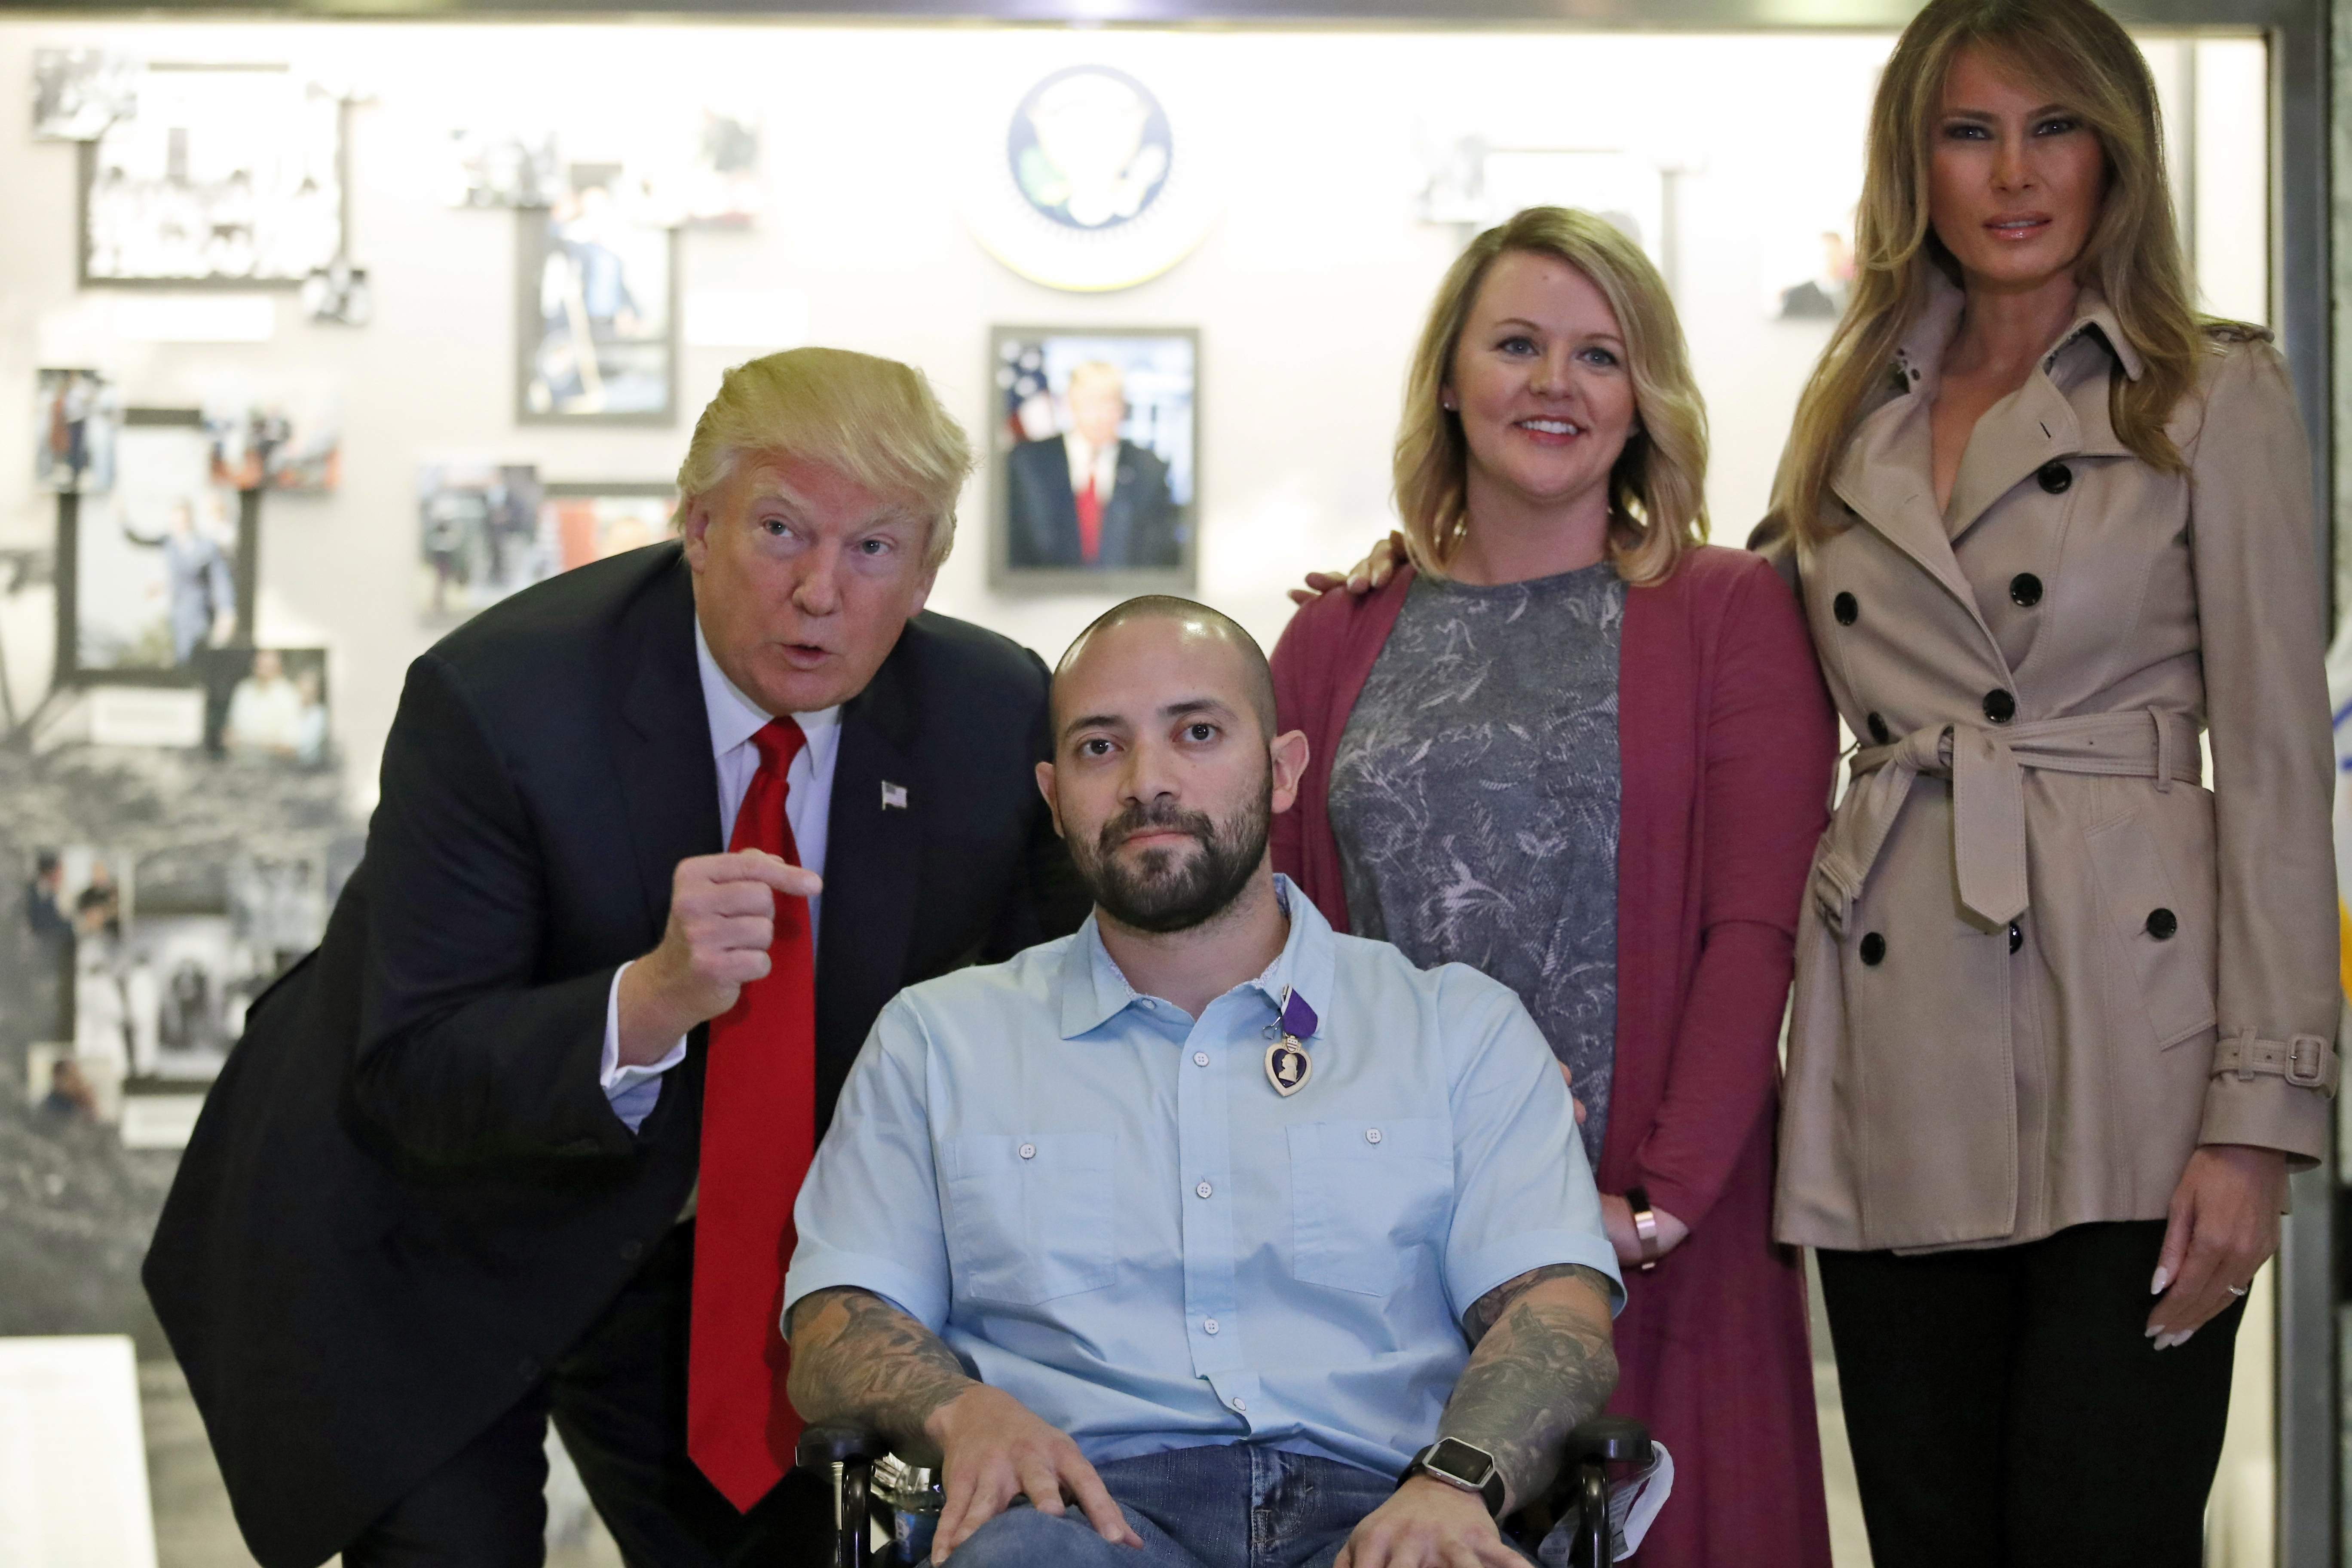 DAY 93 - In this April 22, 2017, file photo, President Donald Trump, left, points after awarding a Purple Heart to U.S. Army Sgt. 1st Class Alvaro Barrientos, with first lady Melania Trump, right, and Tammy Barrientos, second from right, at Walter Reed National Military Medical Center in Bethesda, Md. (AP Photo/Alex Brandon, File)